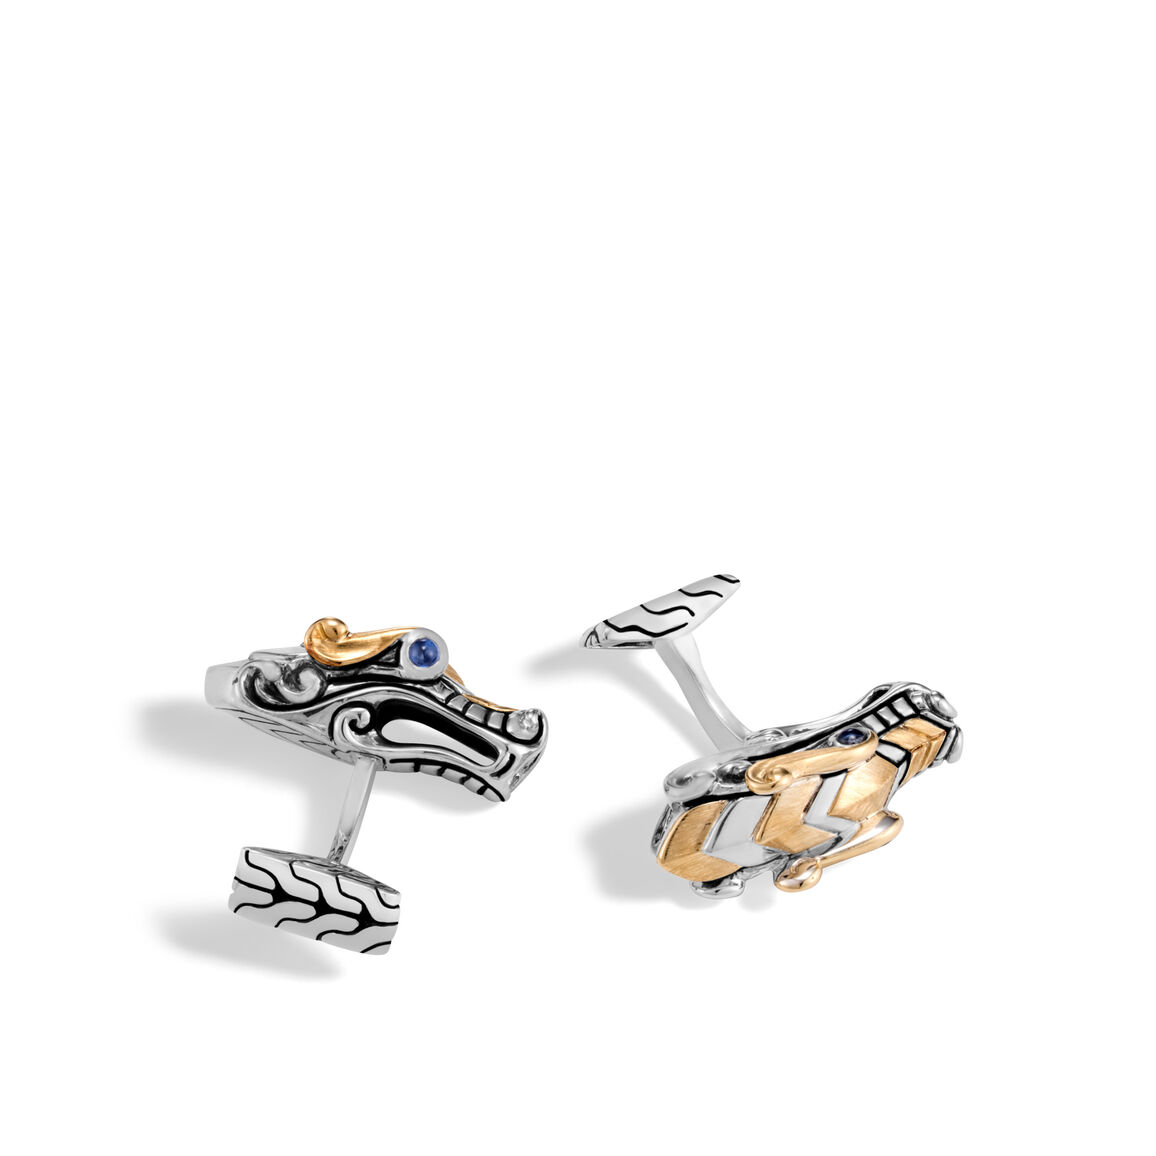 Legends Naga Cufflinks in Silver and Brushed 18K Gold